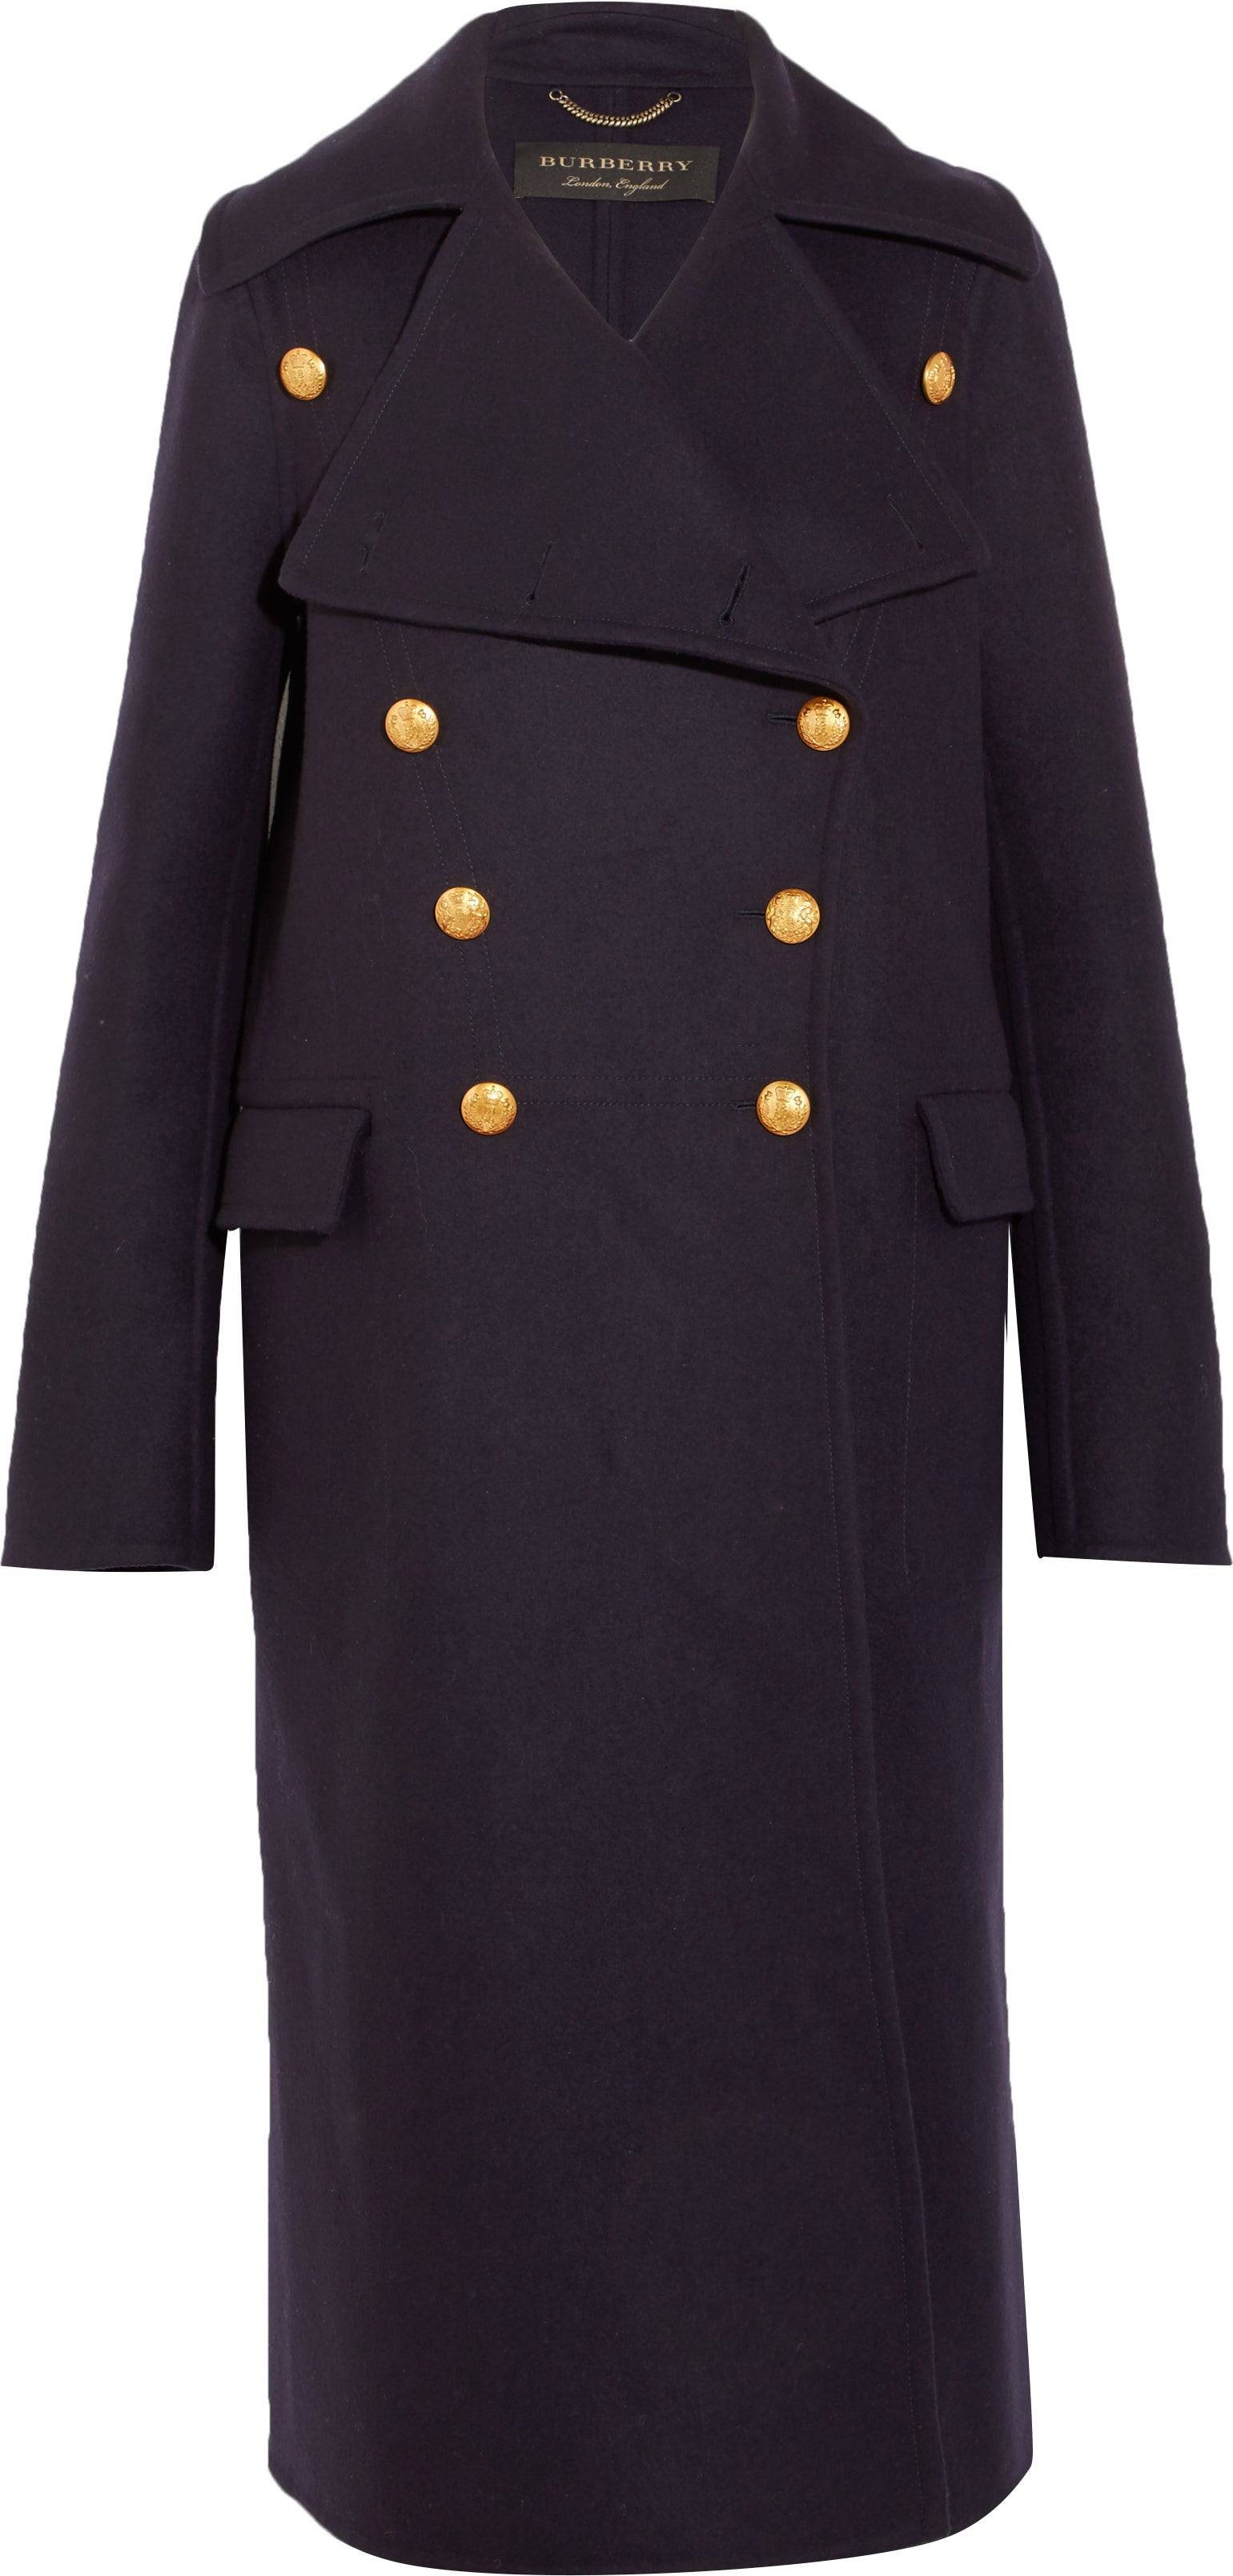 burberry net-a-porter capsule collection navy wool coat